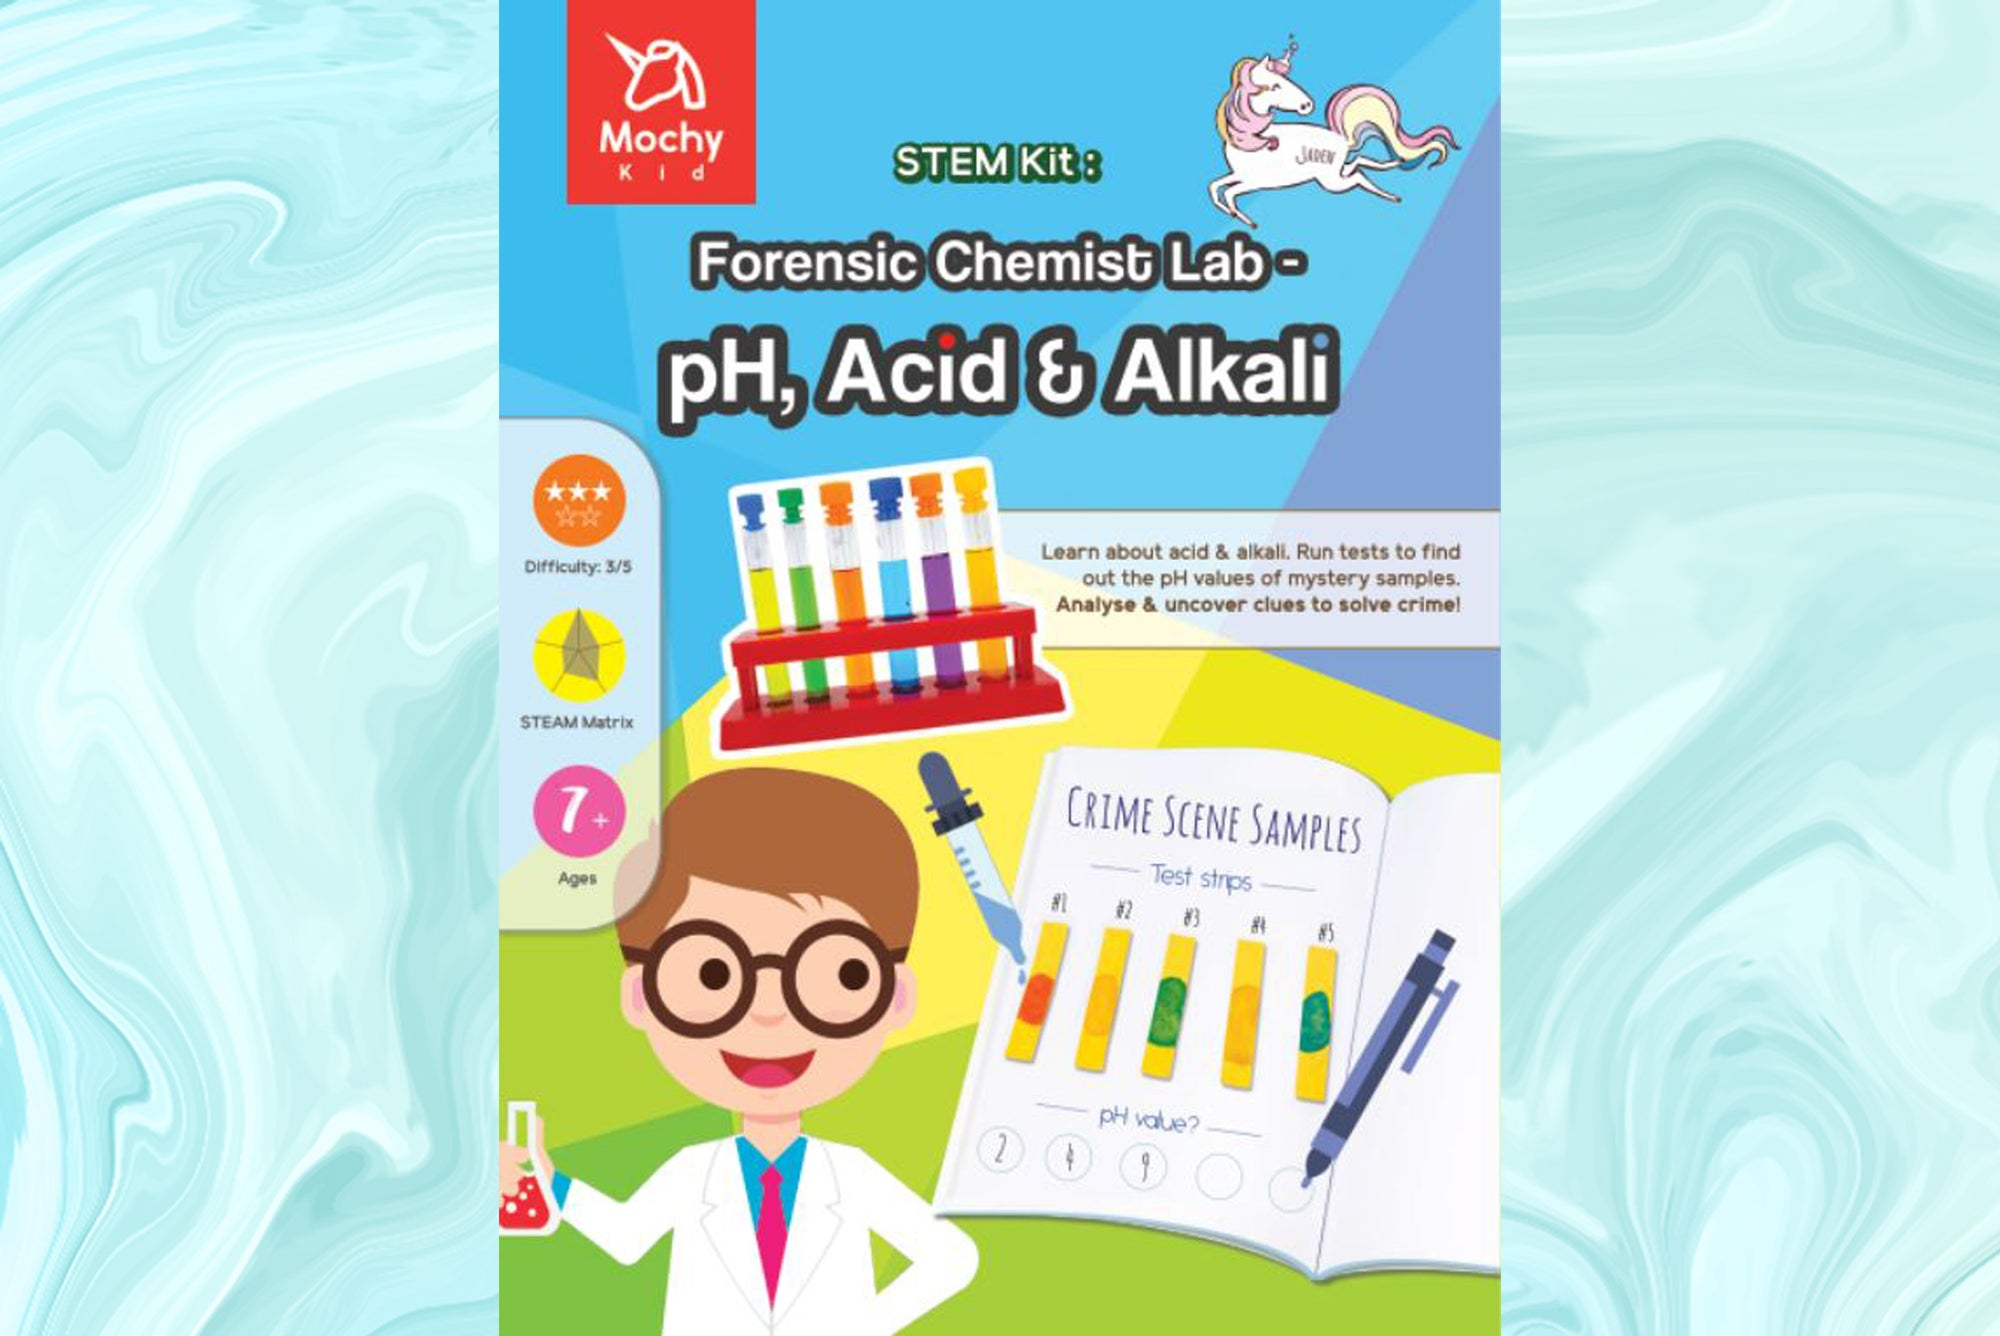 Forensic Chemist Lab: pH, Acid & Alkali - Moinàrchy MIY (HK)